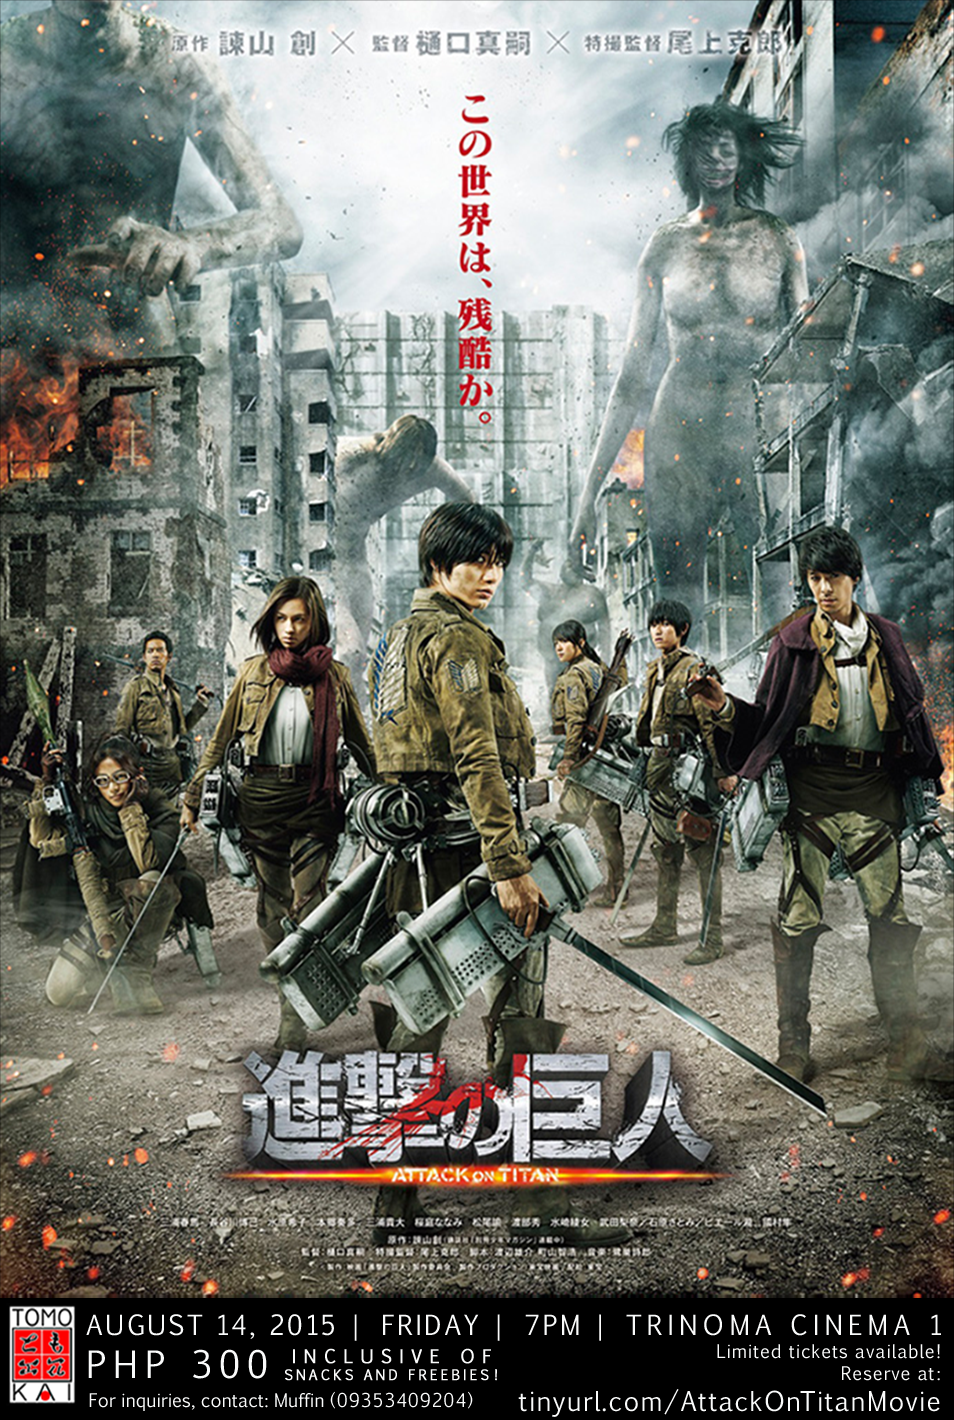 UP Tomo-Kai Shingeki no Kyojin Block Screenings